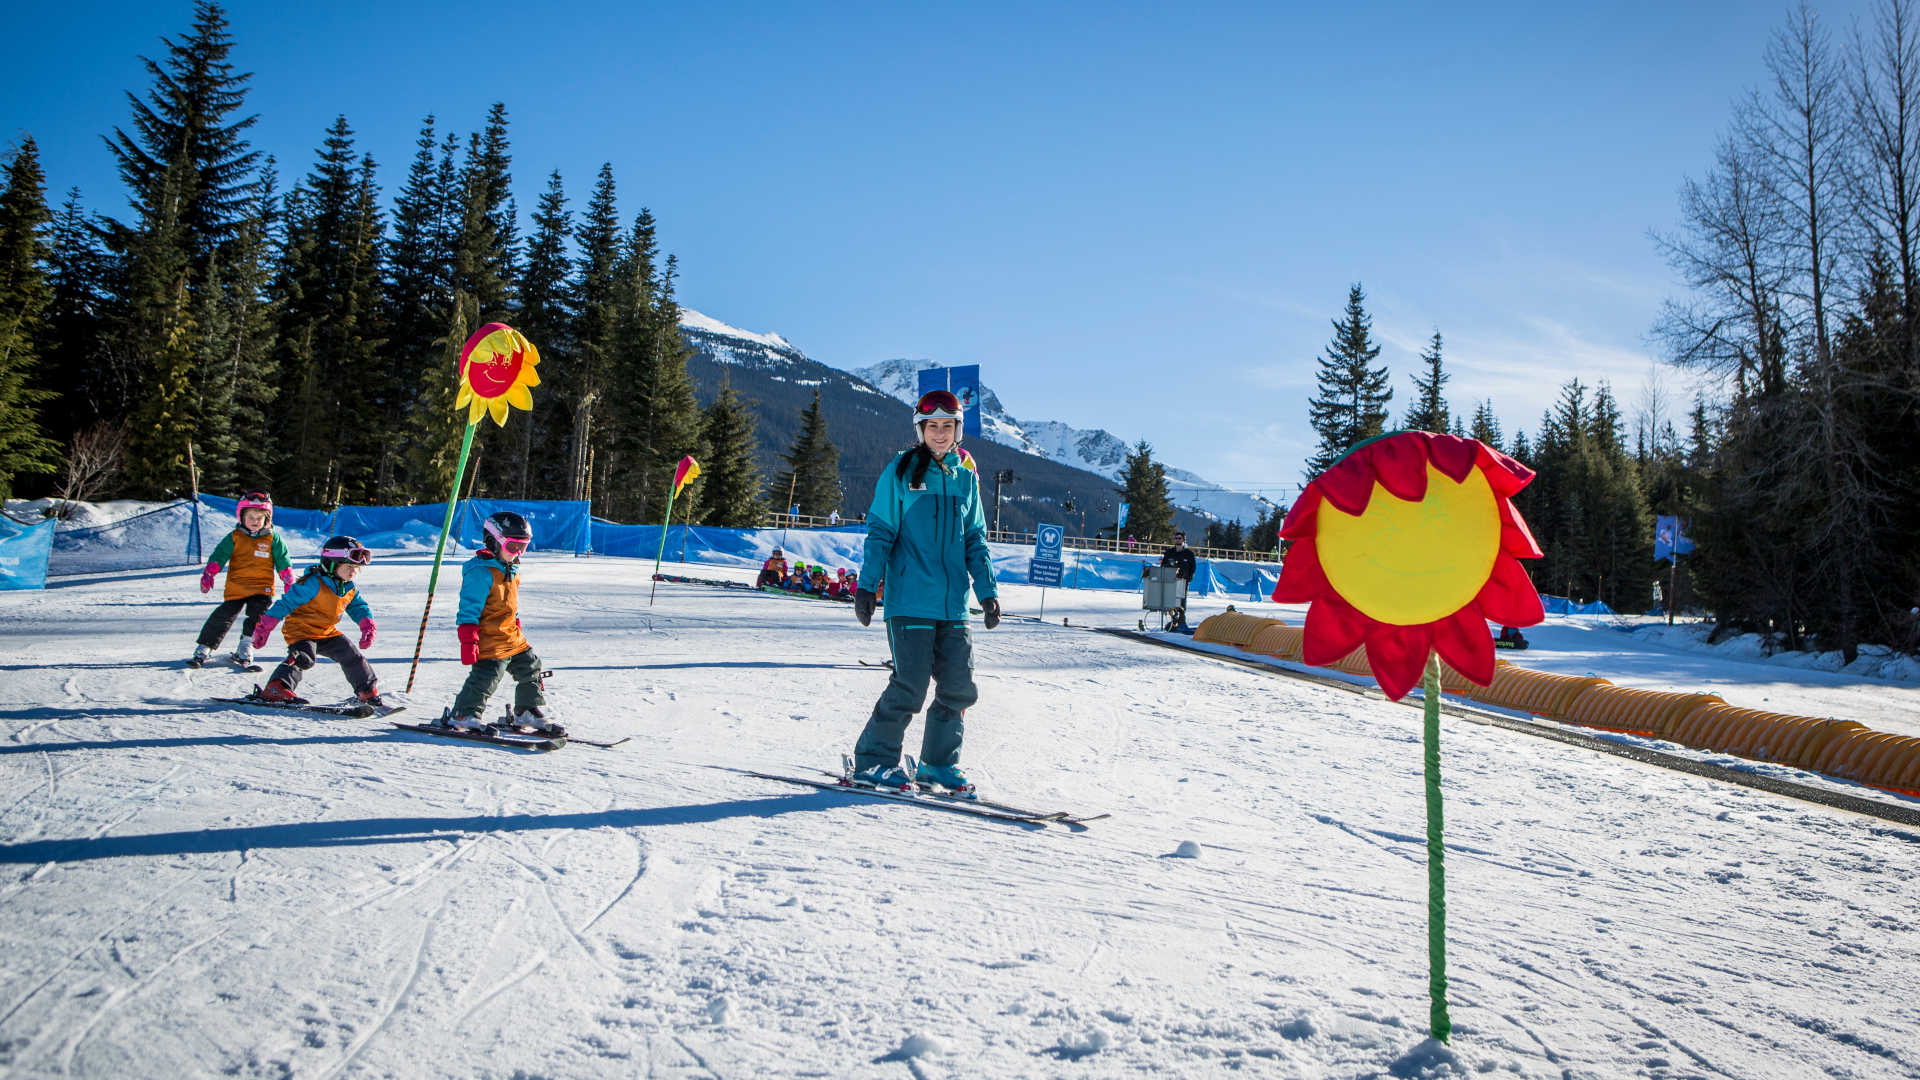 0865b3883 Become A Ski Instructor in Whistler With Our Training & Paid Work ...